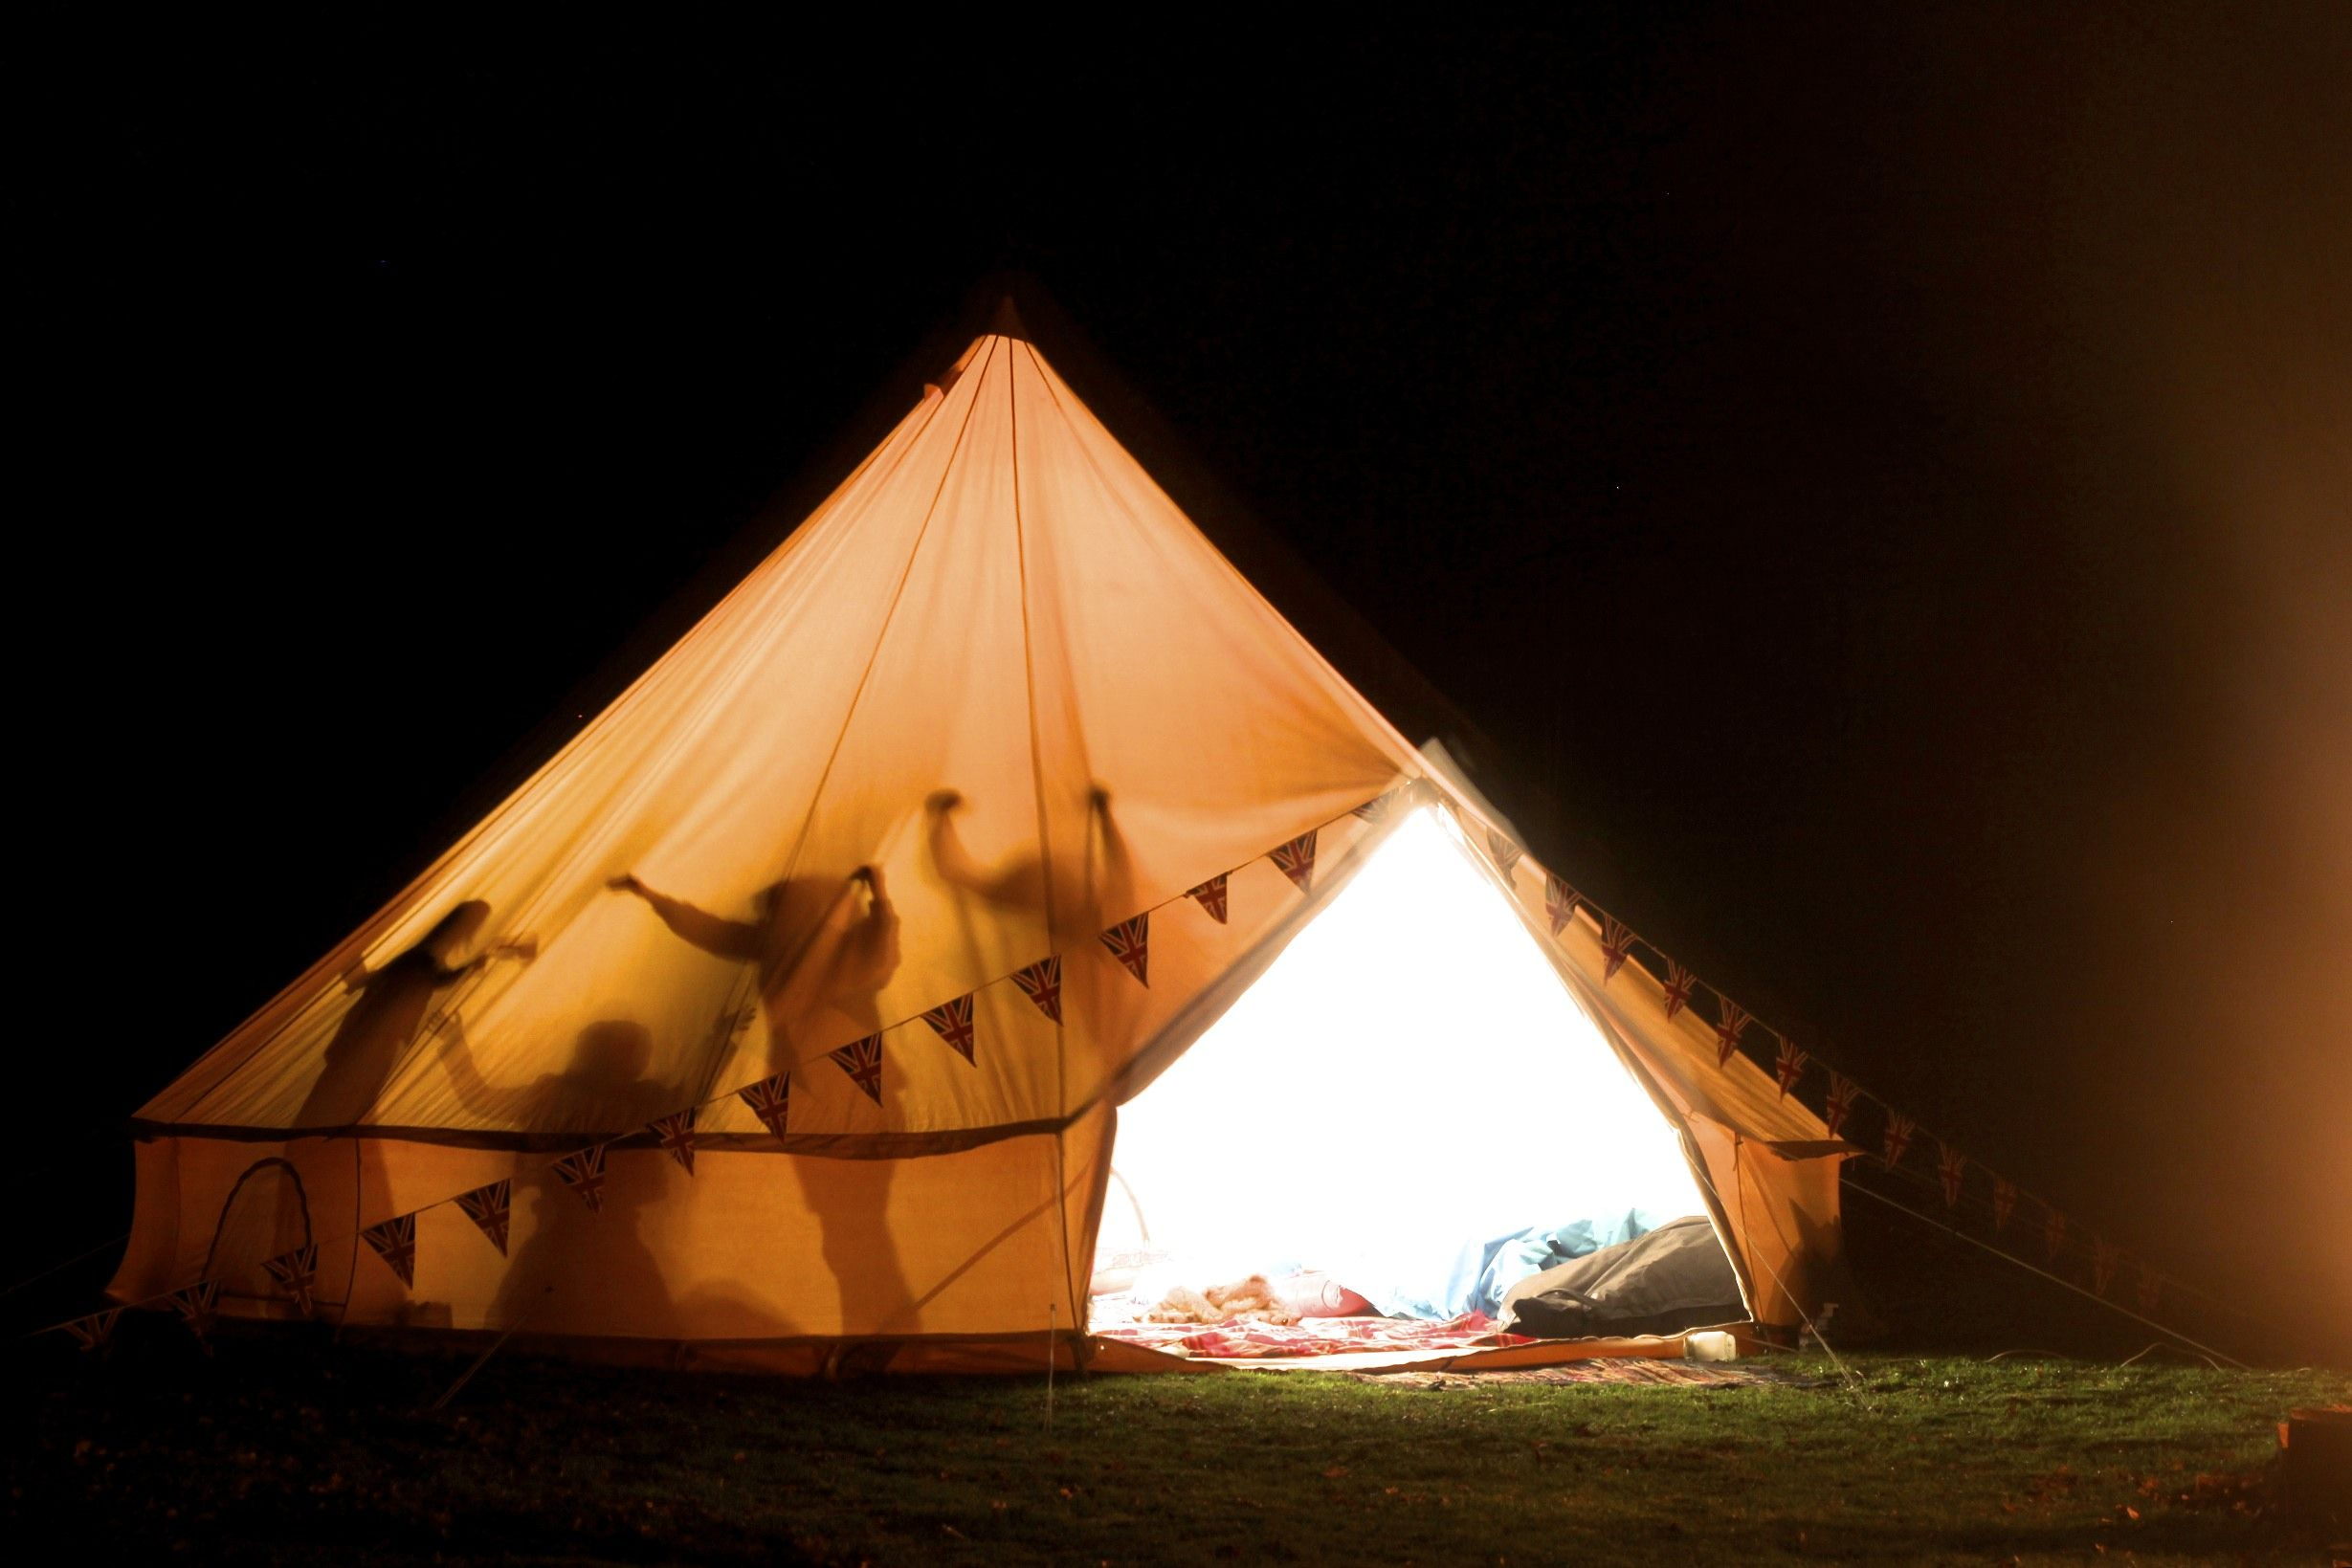 7m Bell tents - .boutiquec&ing.com & 7m Bell tents - www.boutiquecamping.com | Camping Planning ...